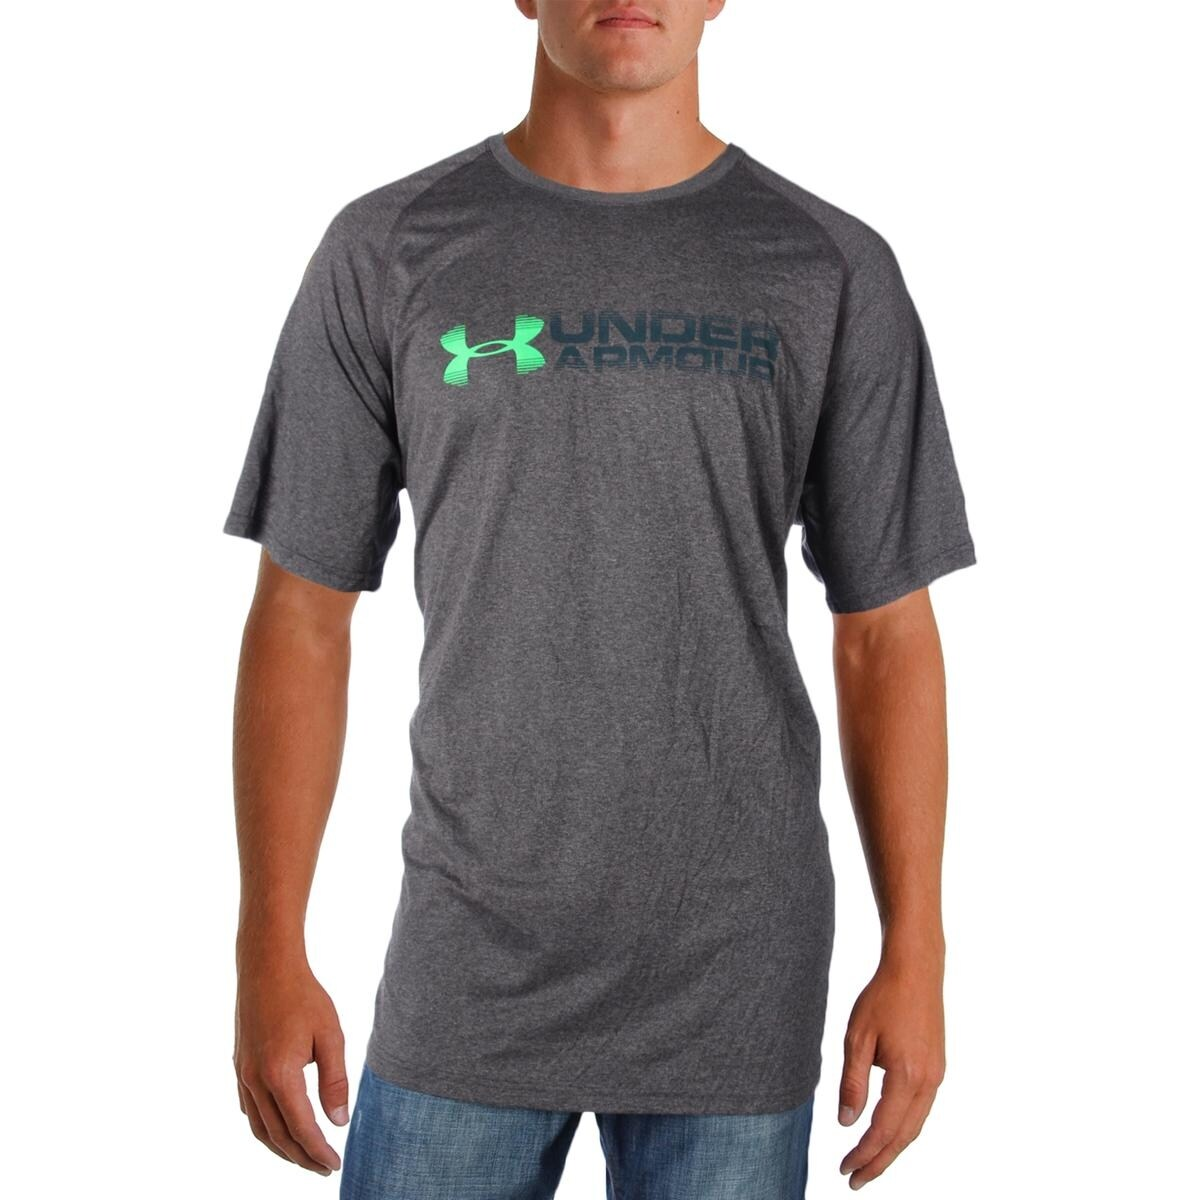 c4ffcadc7 Shop Under Armour Mens Graphic T-Shirt Heat Gear Loose Fit - 2XL - Free  Shipping On Orders Over $45 - Overstock - 22731654